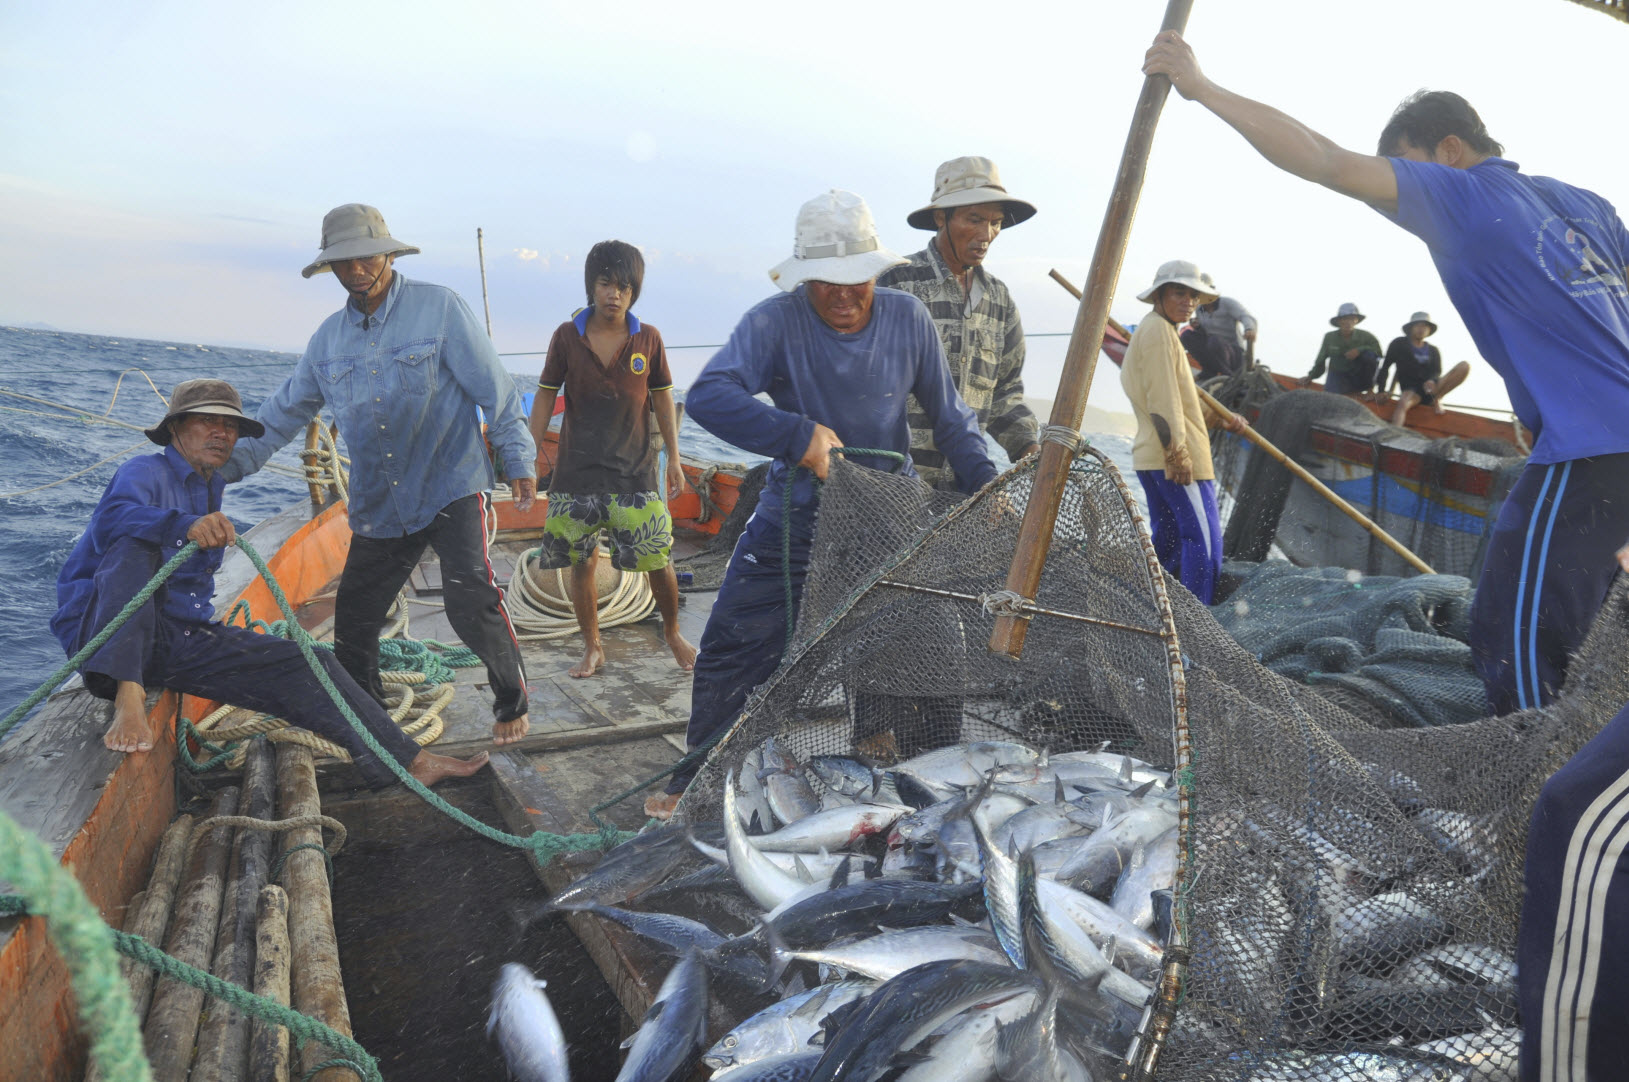 Modern Day Slavery in Fishing Industry